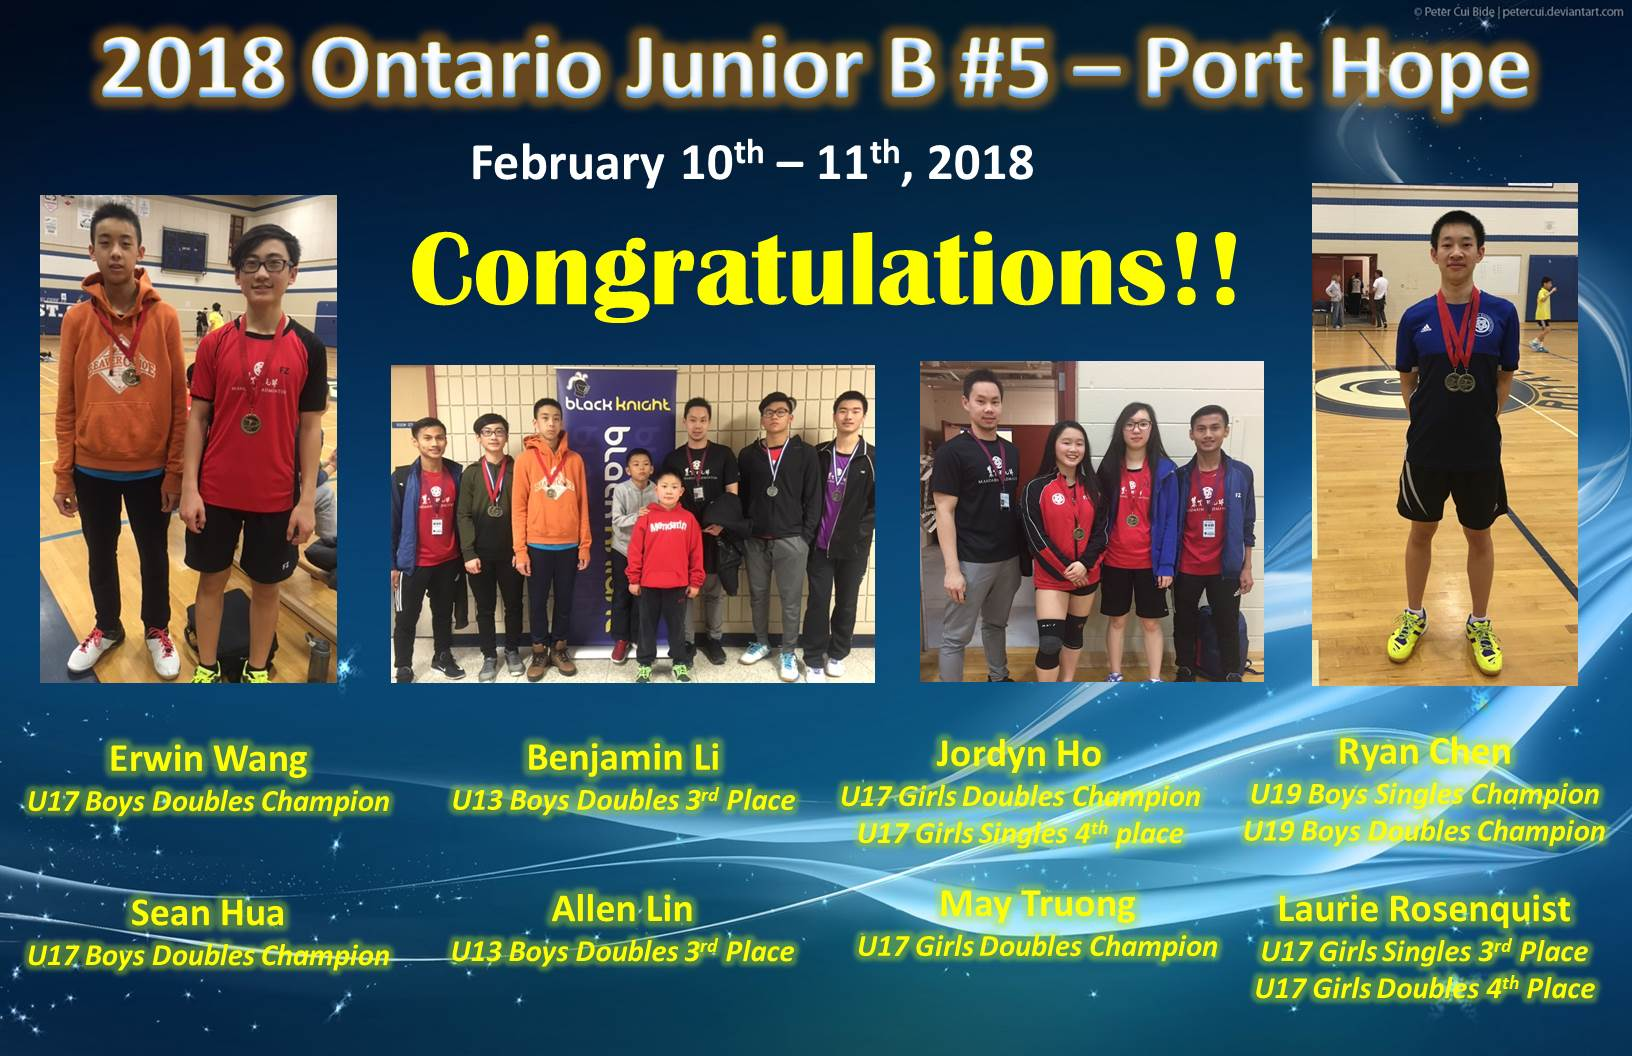 2018 Jr B #5 Port Hope Feb 10-11 revised